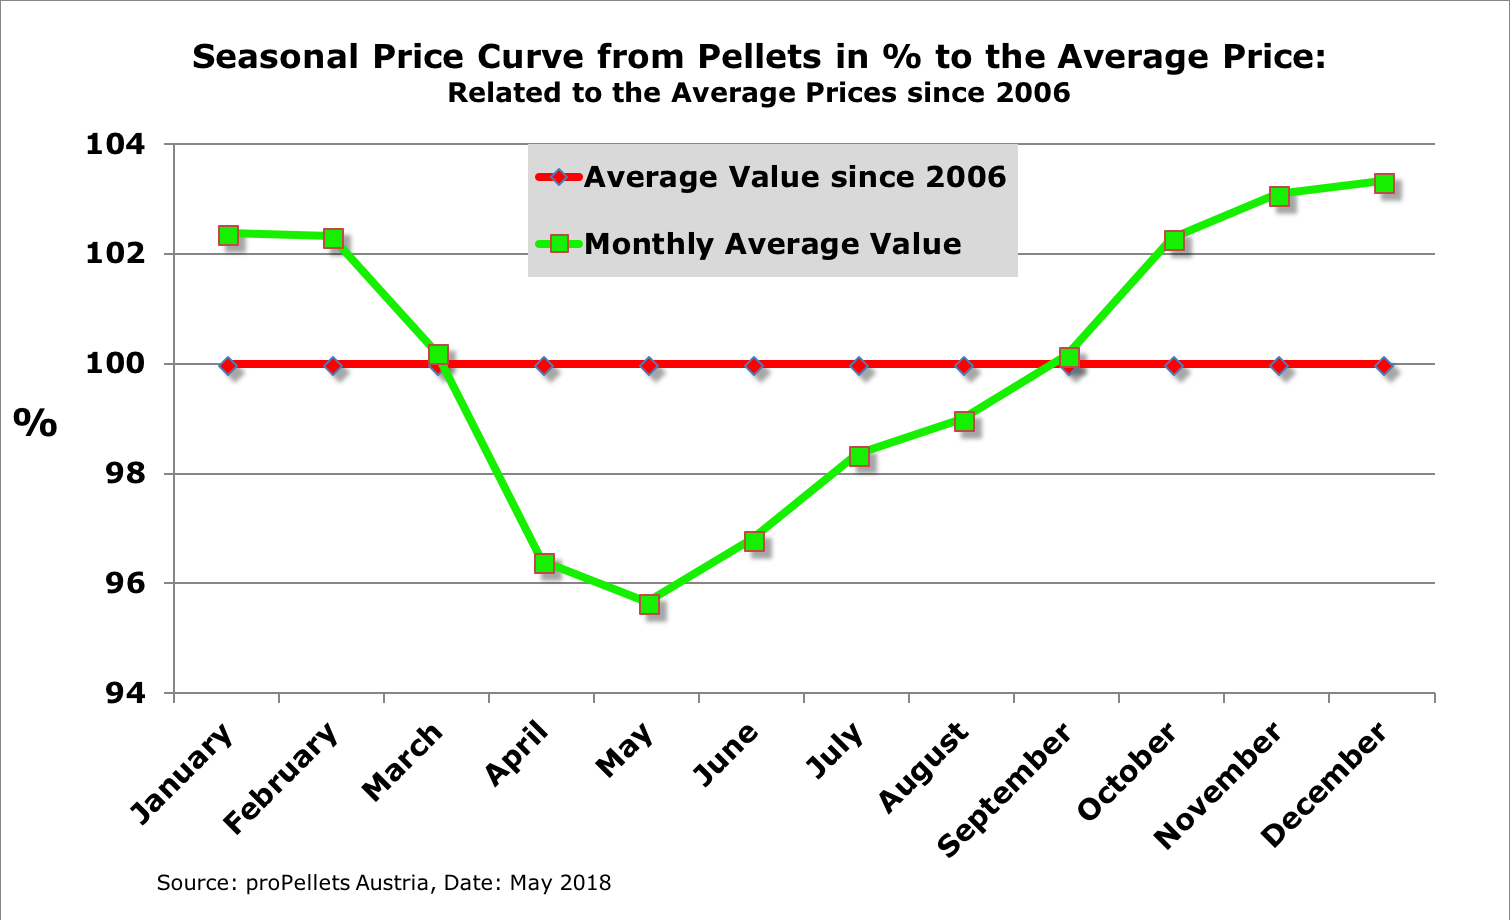 Seasonal Price Curve Pellets in % to the Average Price